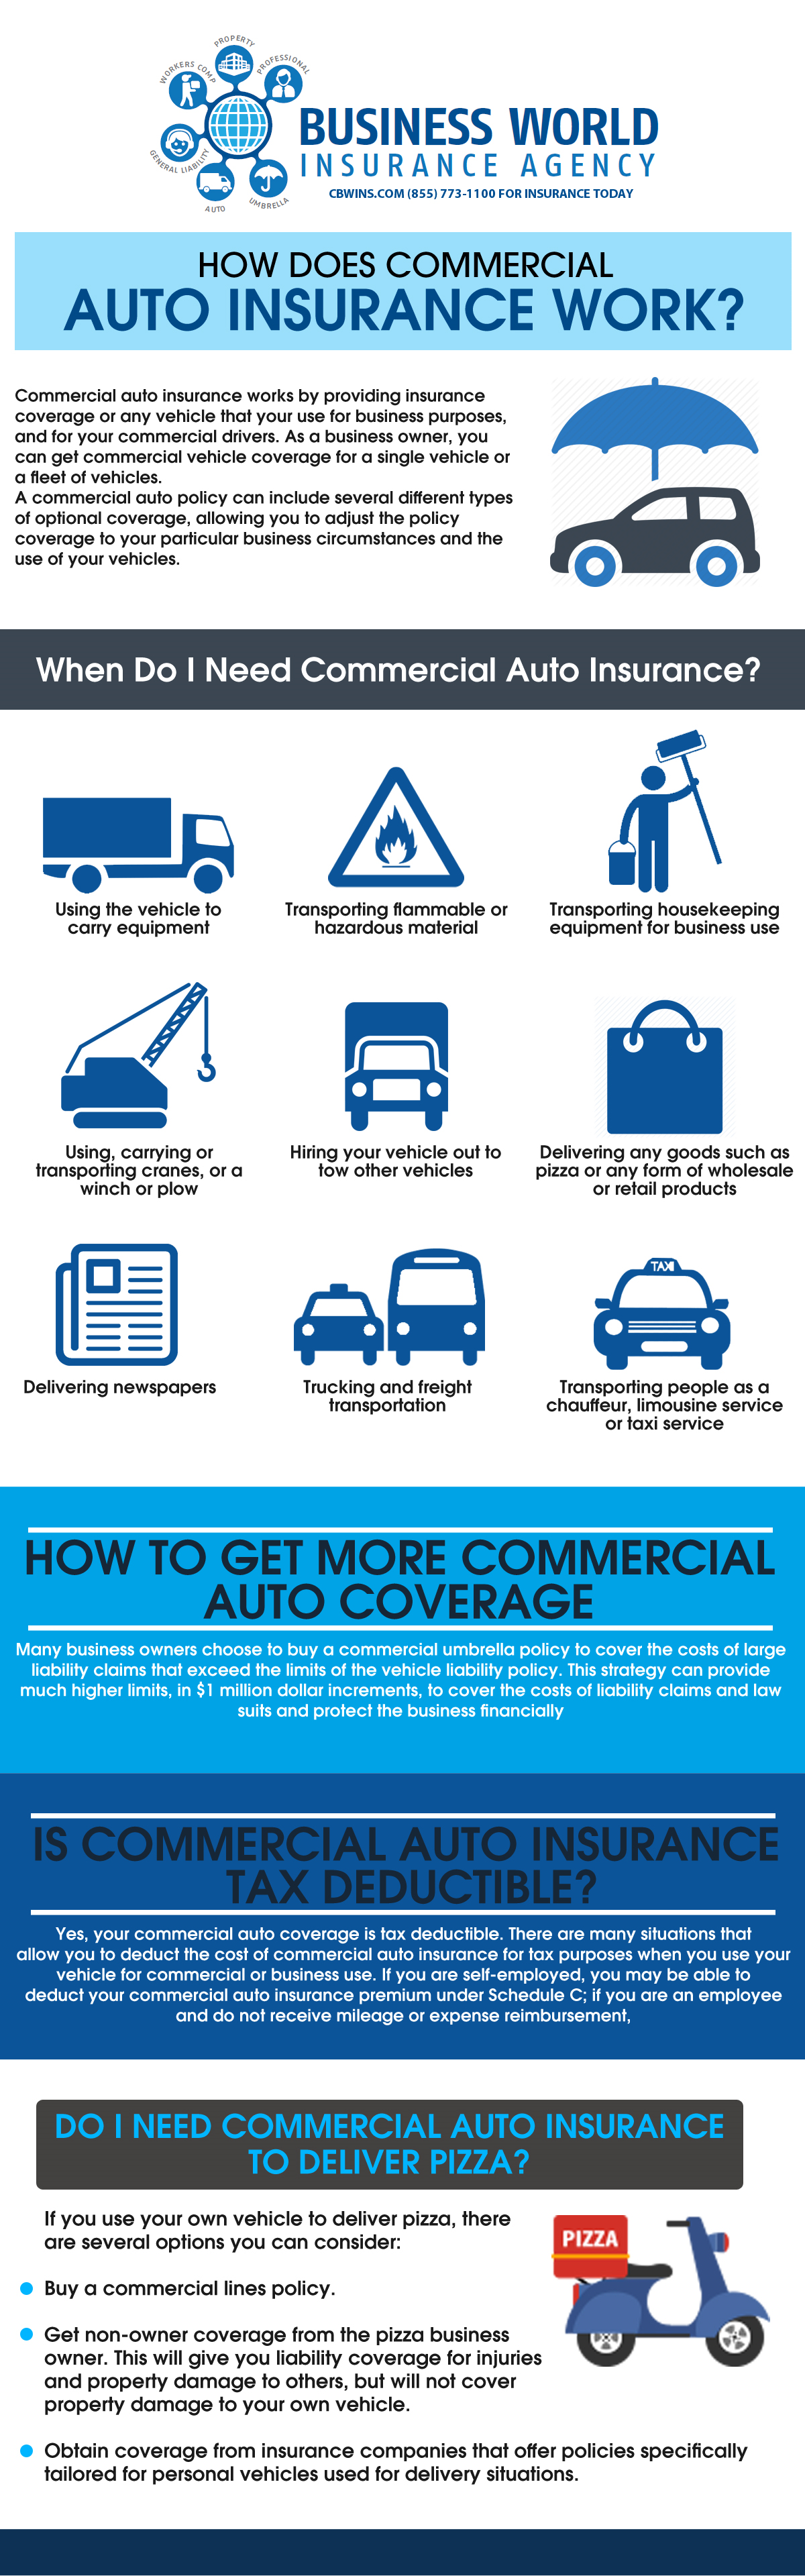 Commercial Auto. Online Quotes, F.A.Q San Diego, California